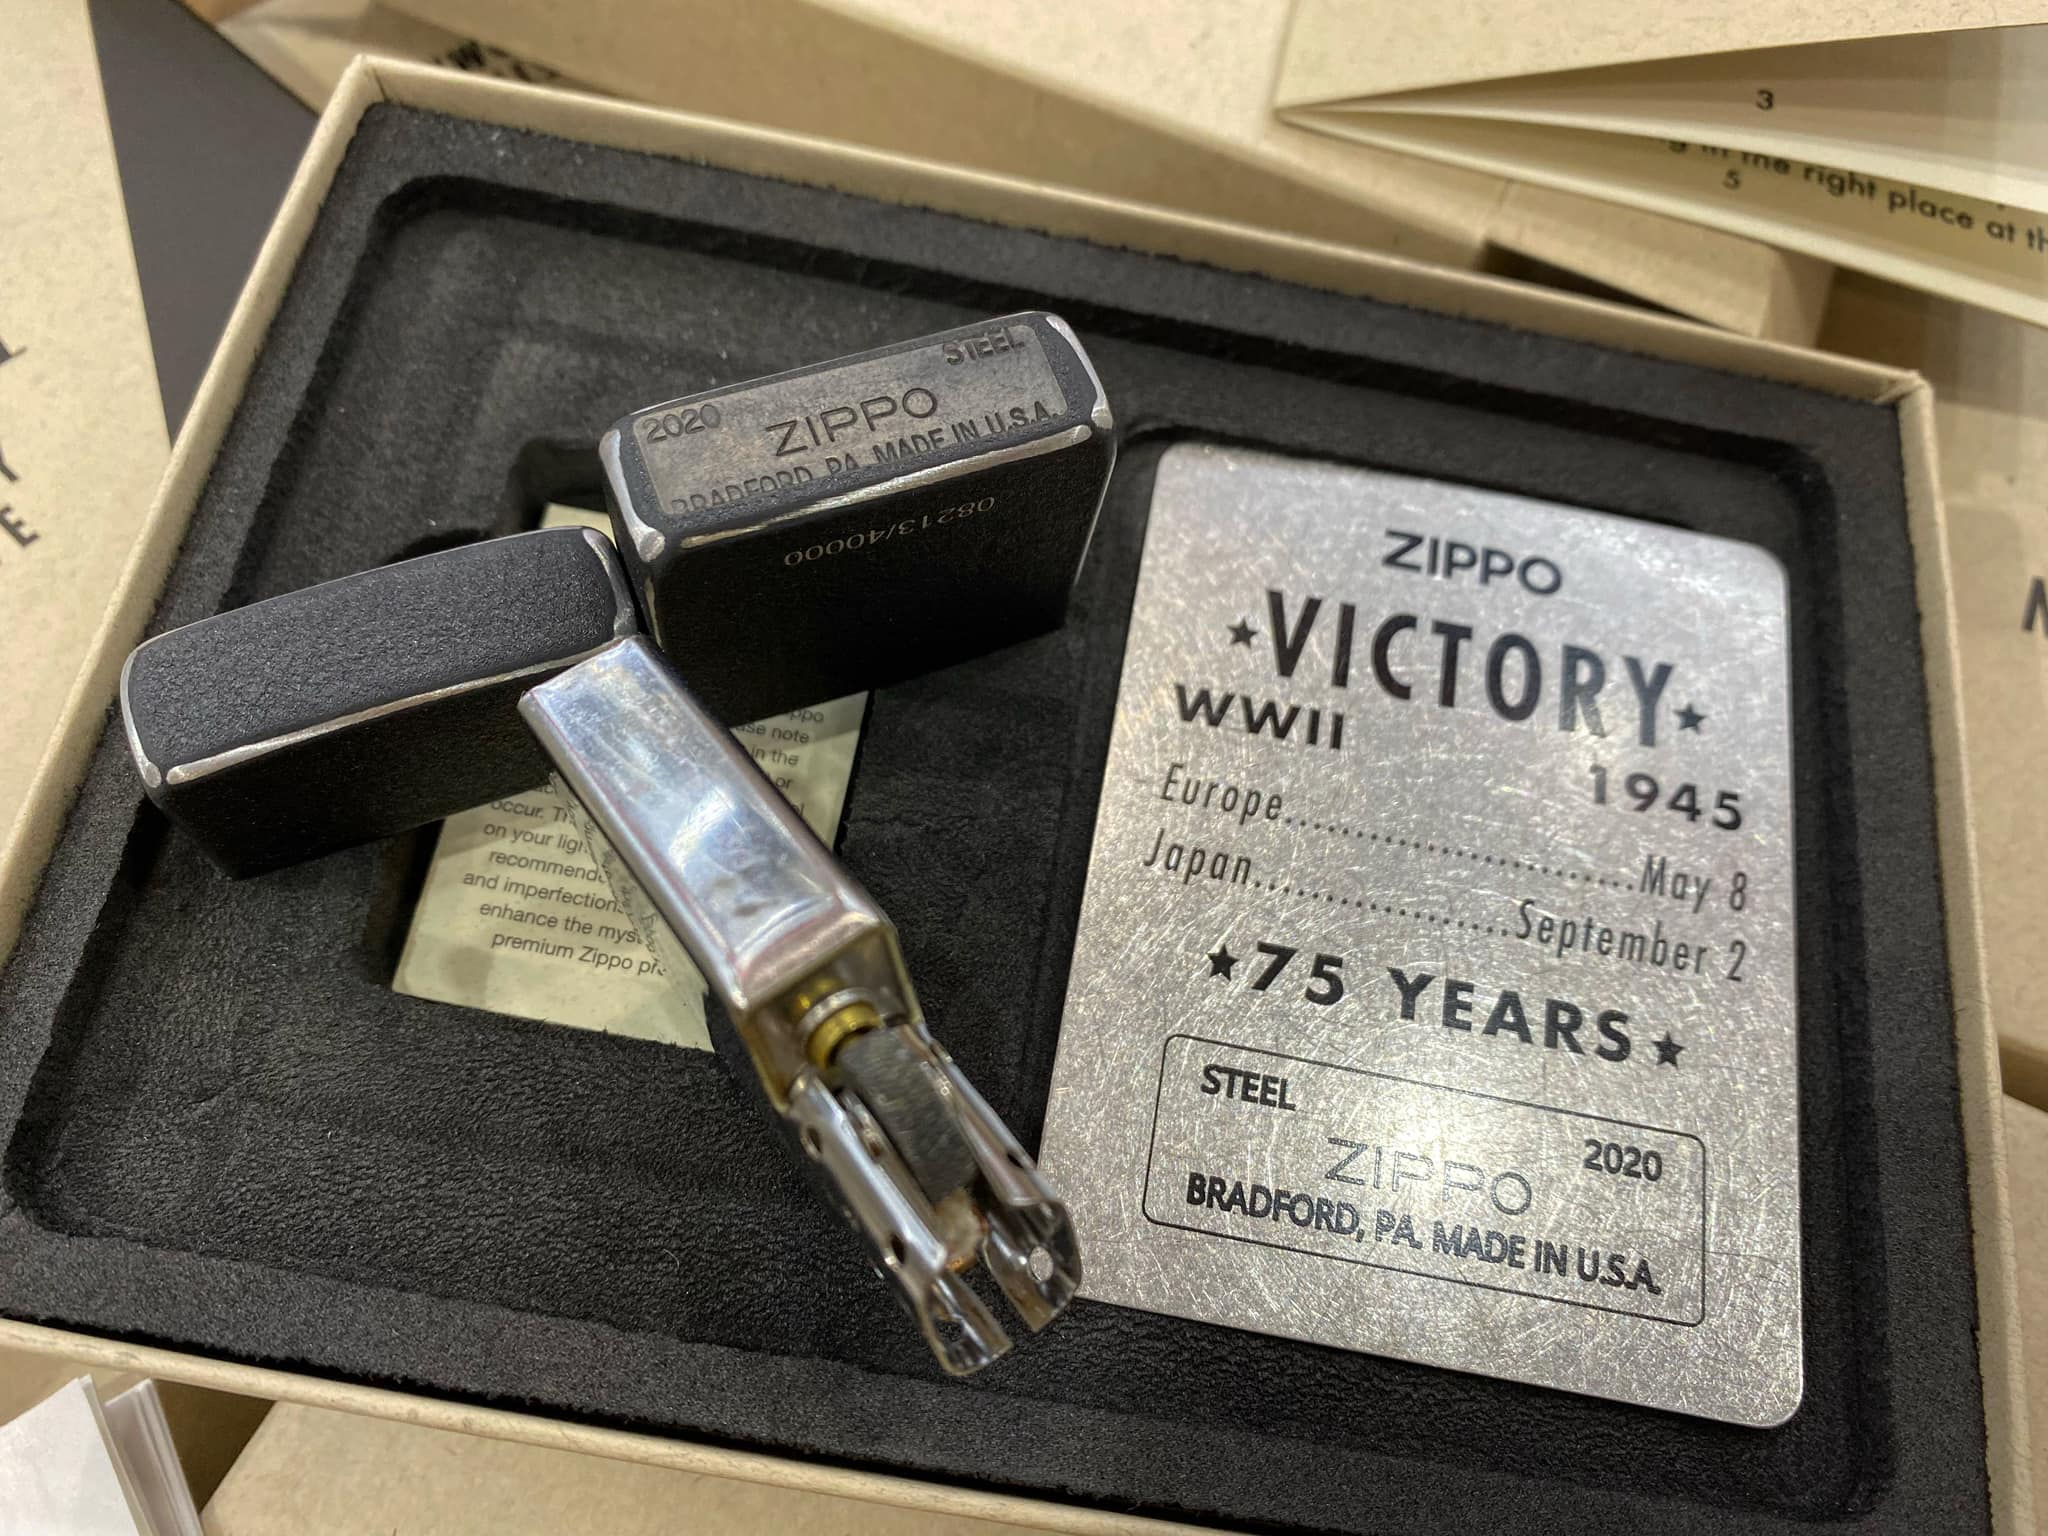 Zippo VE/VJ 75th Anniversary Collectible Steel Case - Zippo Victory in Europe & Japan Collectible Lighter - Zippo 49264 23